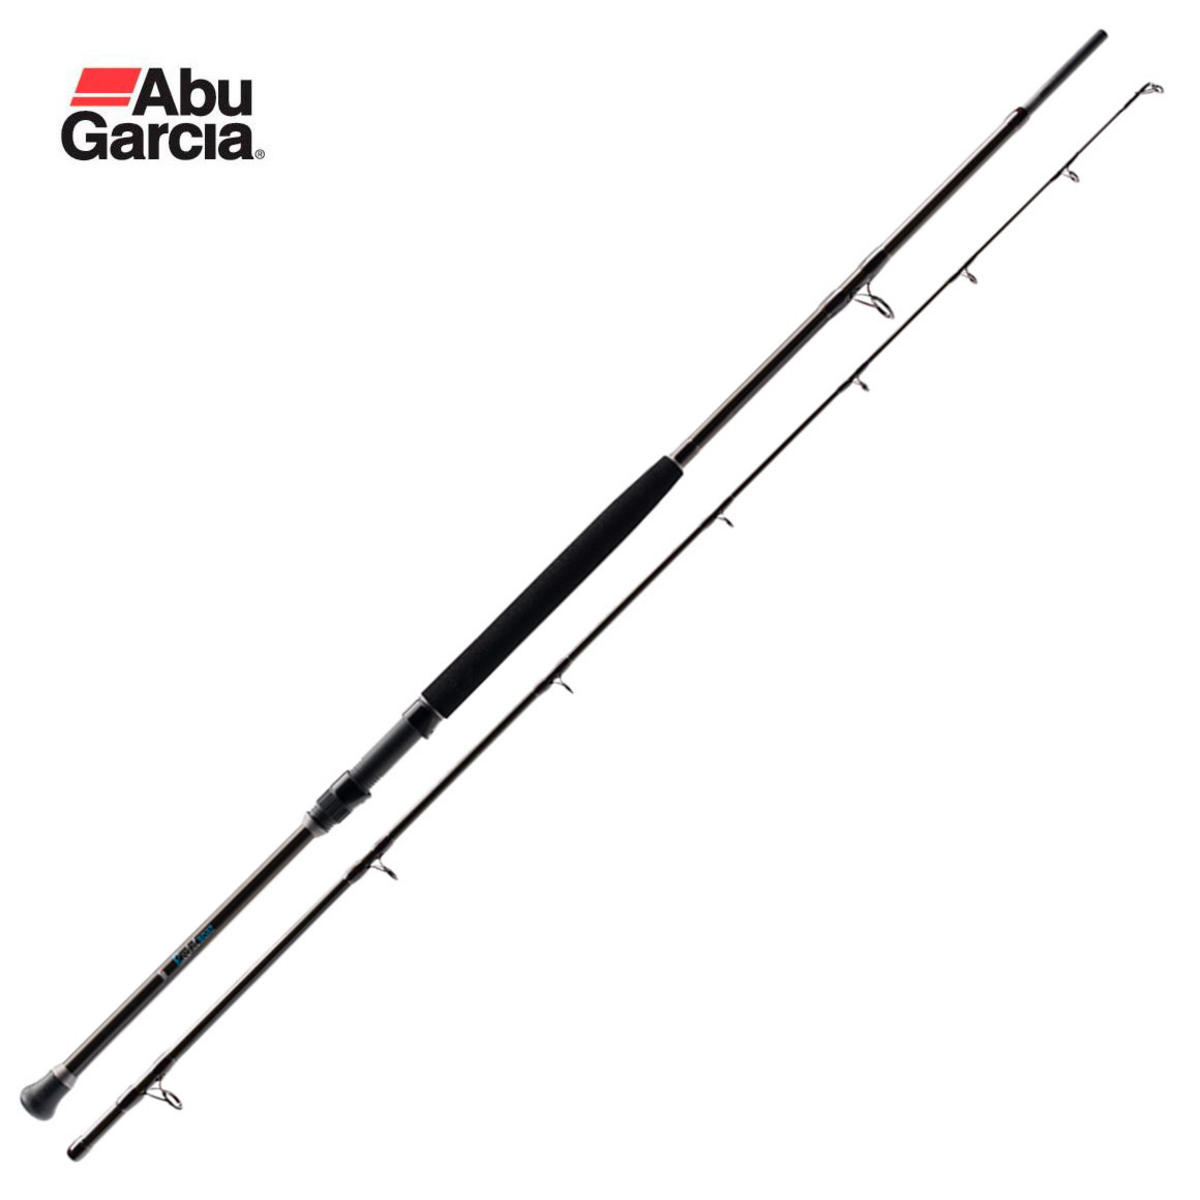 ABU GARCIA ROCKET BOAT ROD 8' 2PC 20-30lb CLASS 1323540